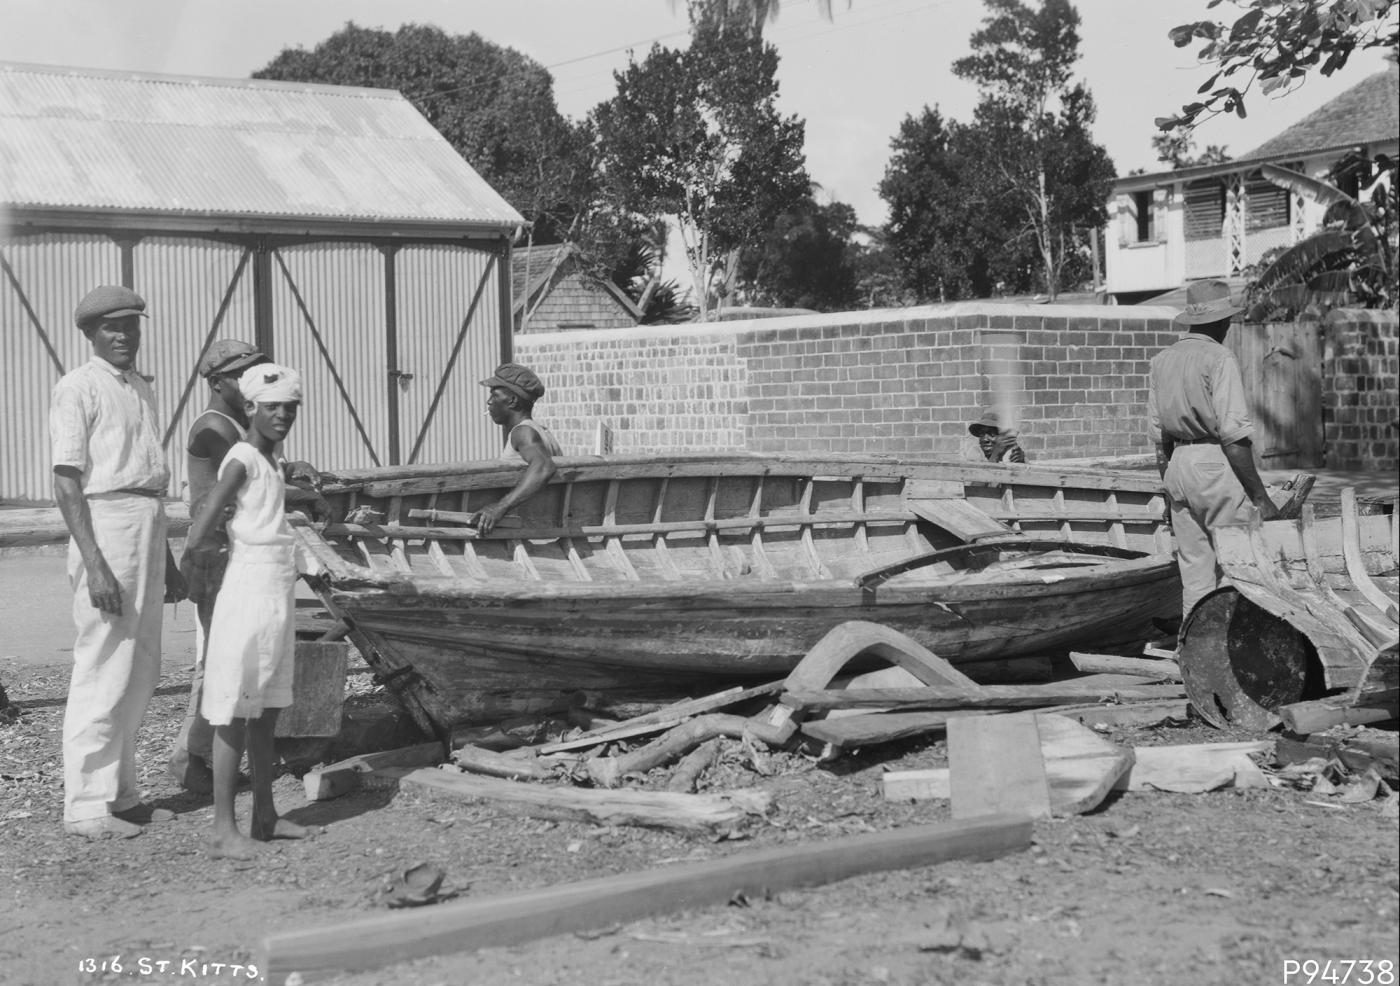 An image showing 'St. Kitts, West Indies'